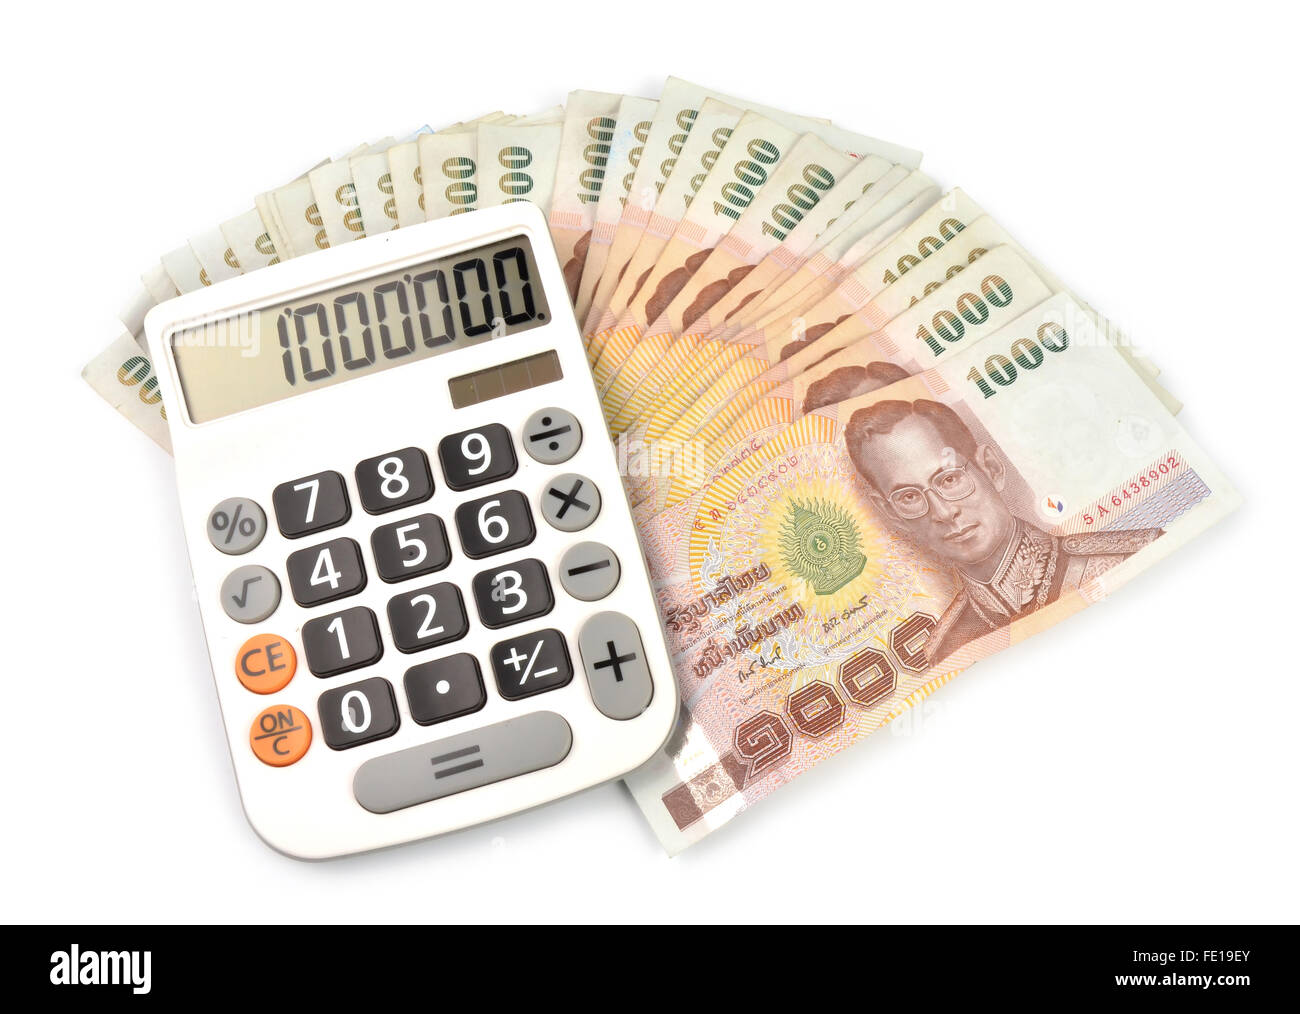 1000 baht banknotes and calculator isolated on white background - Stock Image